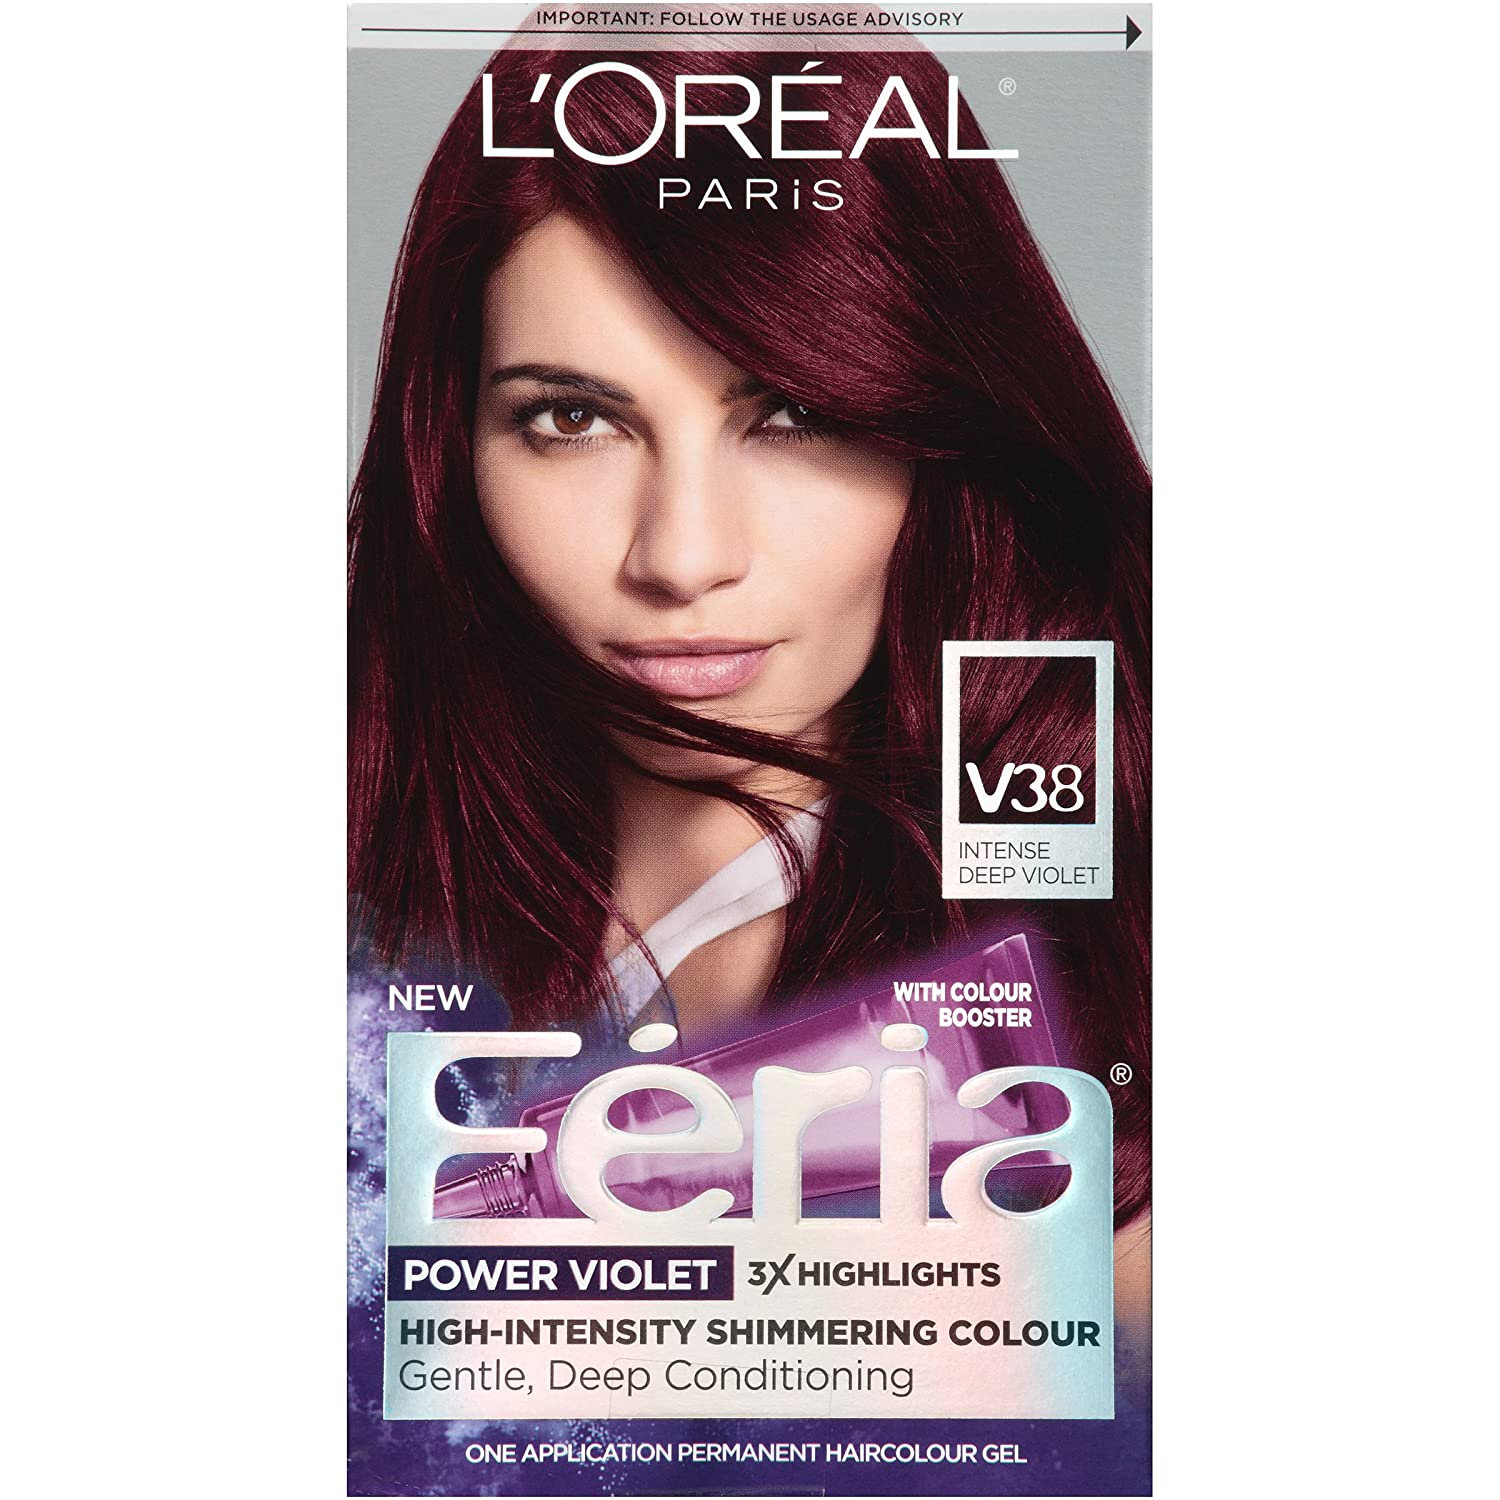 L'Oreal Paris Feria Multi-Faceted Shimmering Permanent Hair Color, V38 Violet Noir (Intense Deep Violet), Pack of 1, Hair Dye